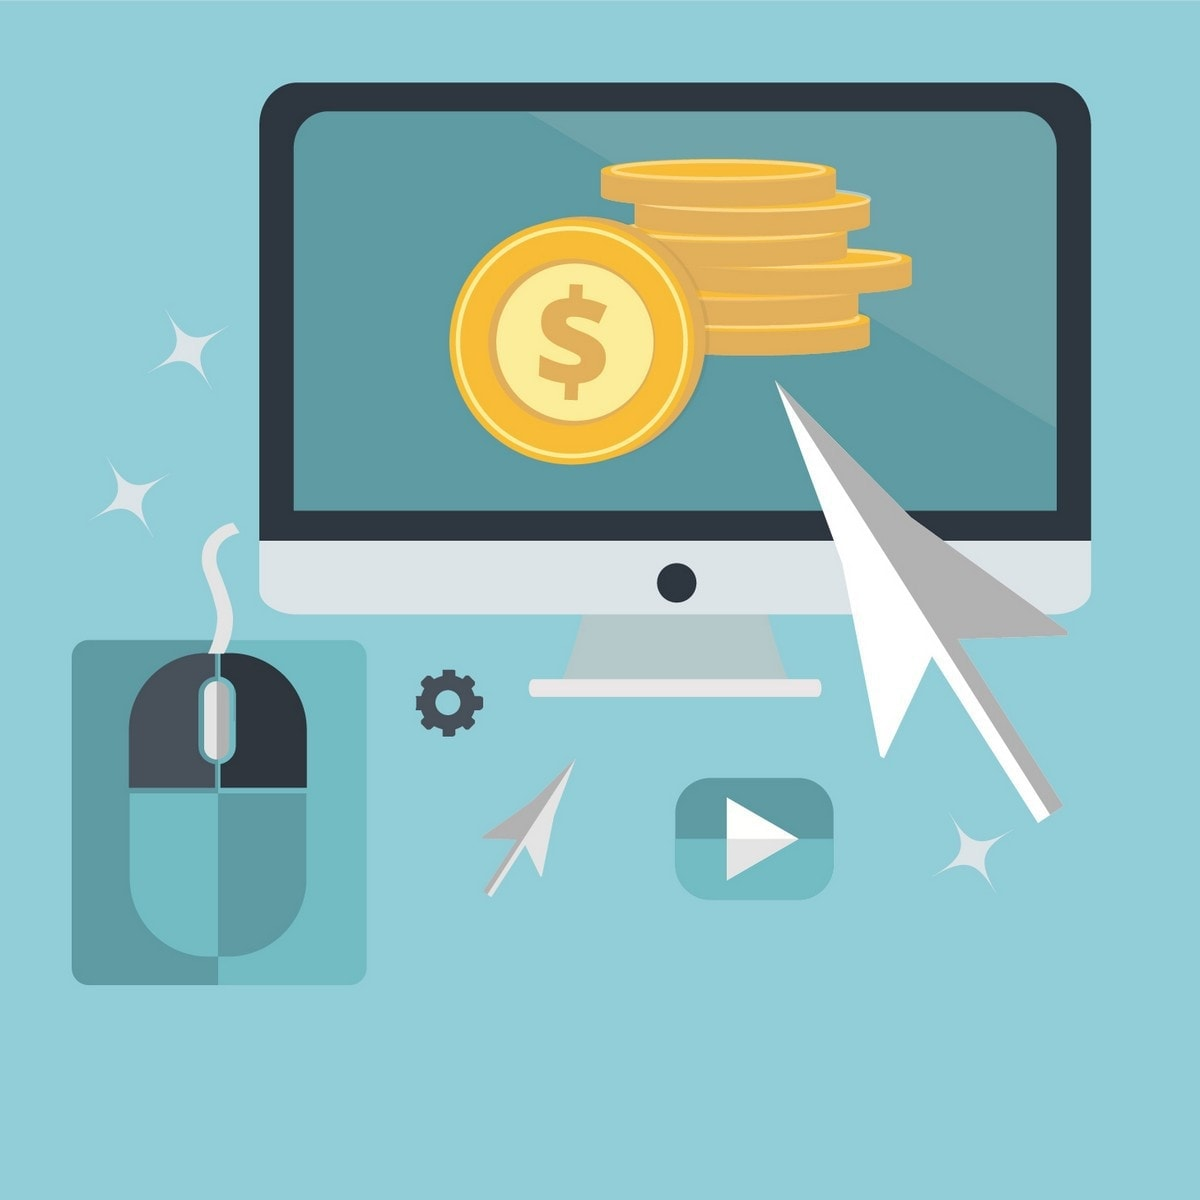 What is Website monetization? How to monetize your website?